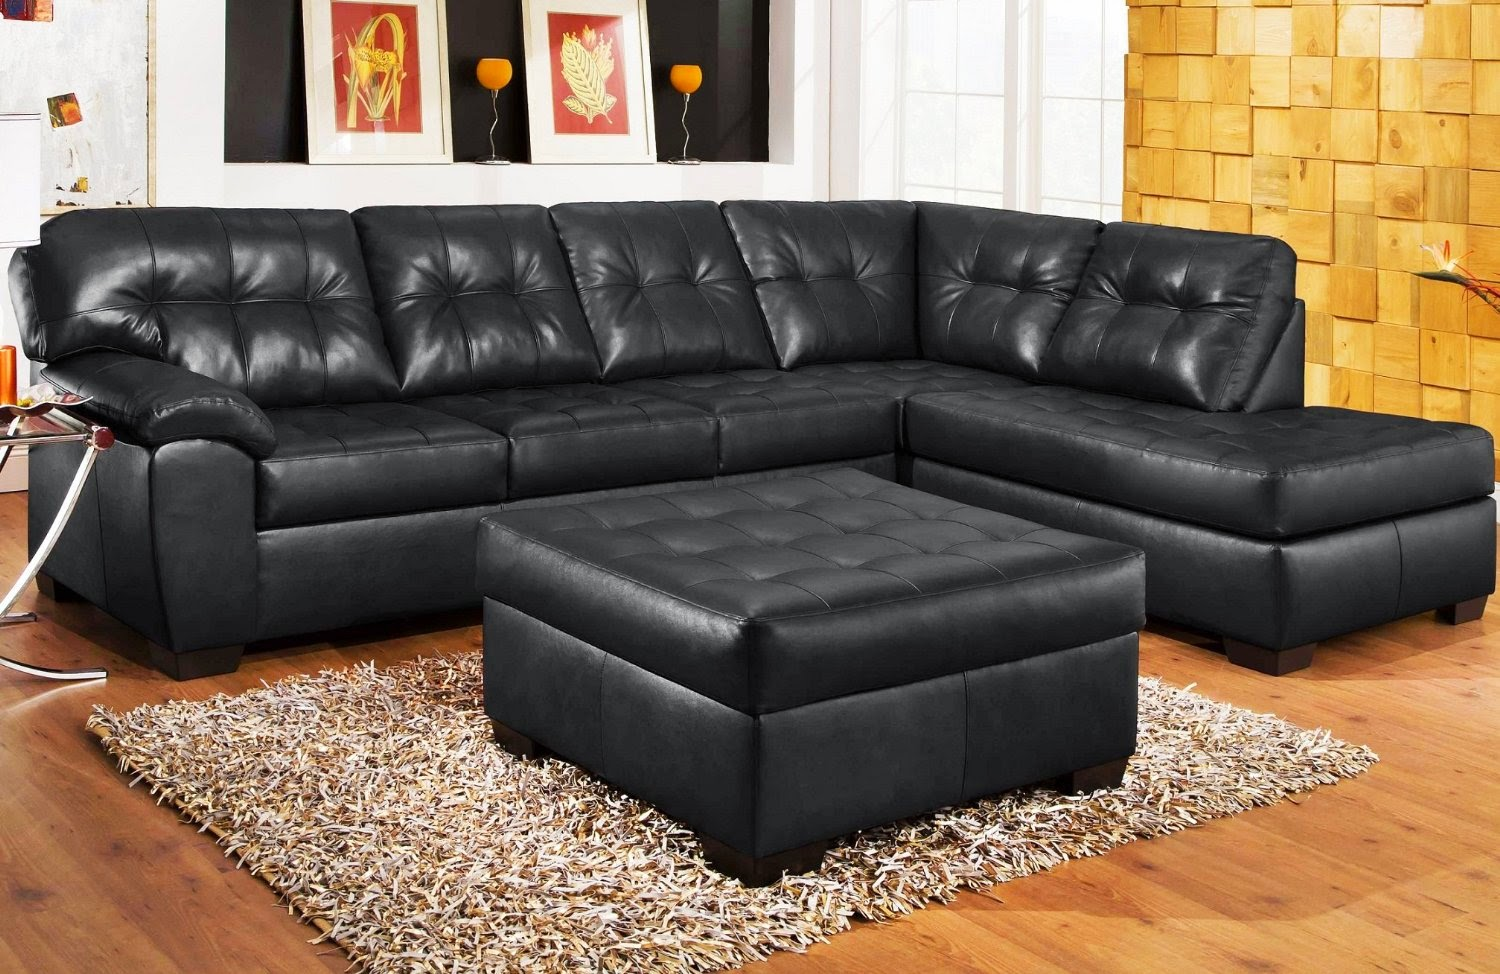 Delicieux 3 Piece Bonded Leather Sectional Sofa With Chaise And Ottoman